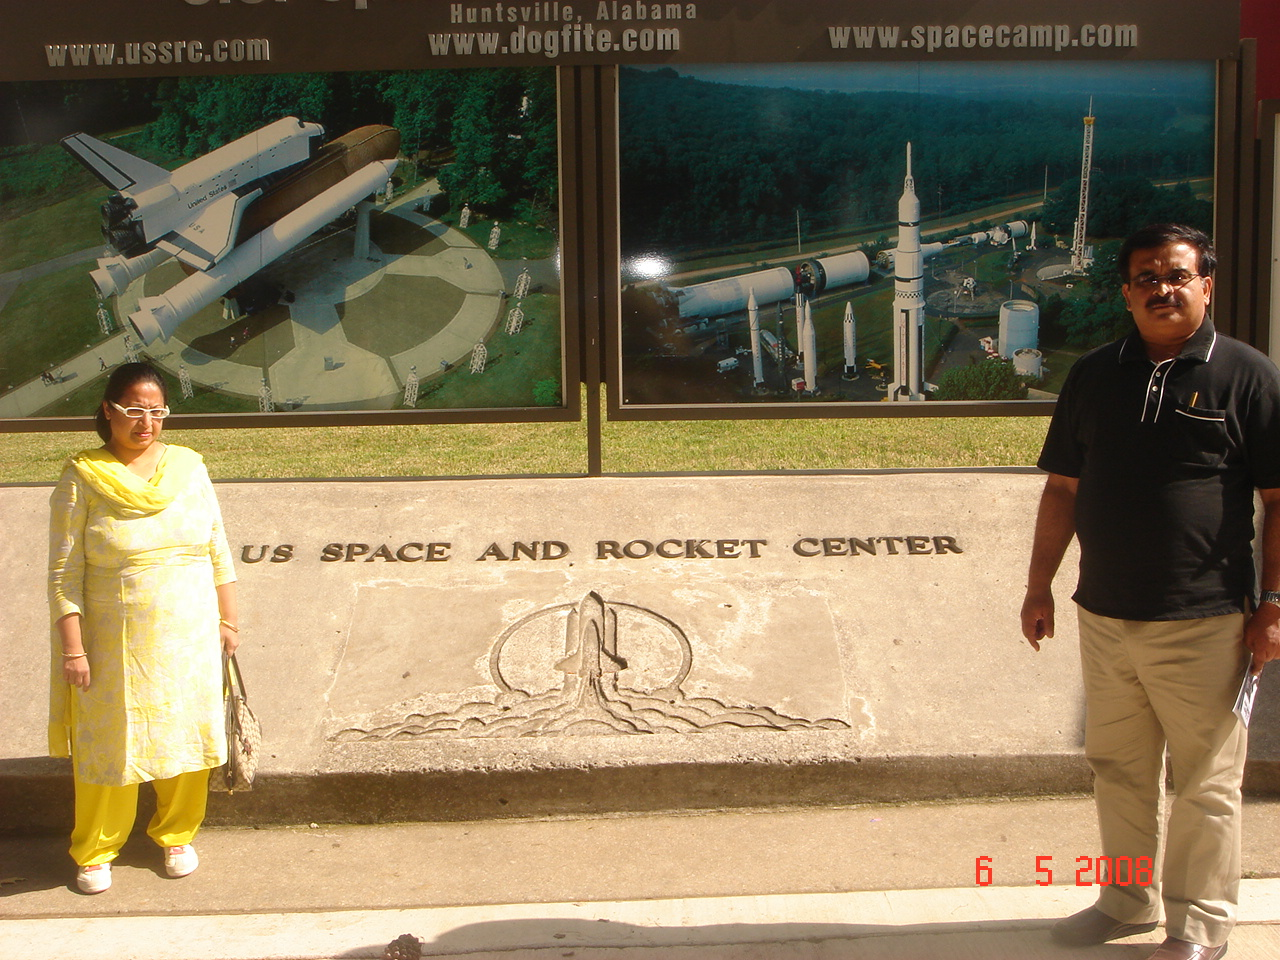 Space and Rocket Center,Huntsville